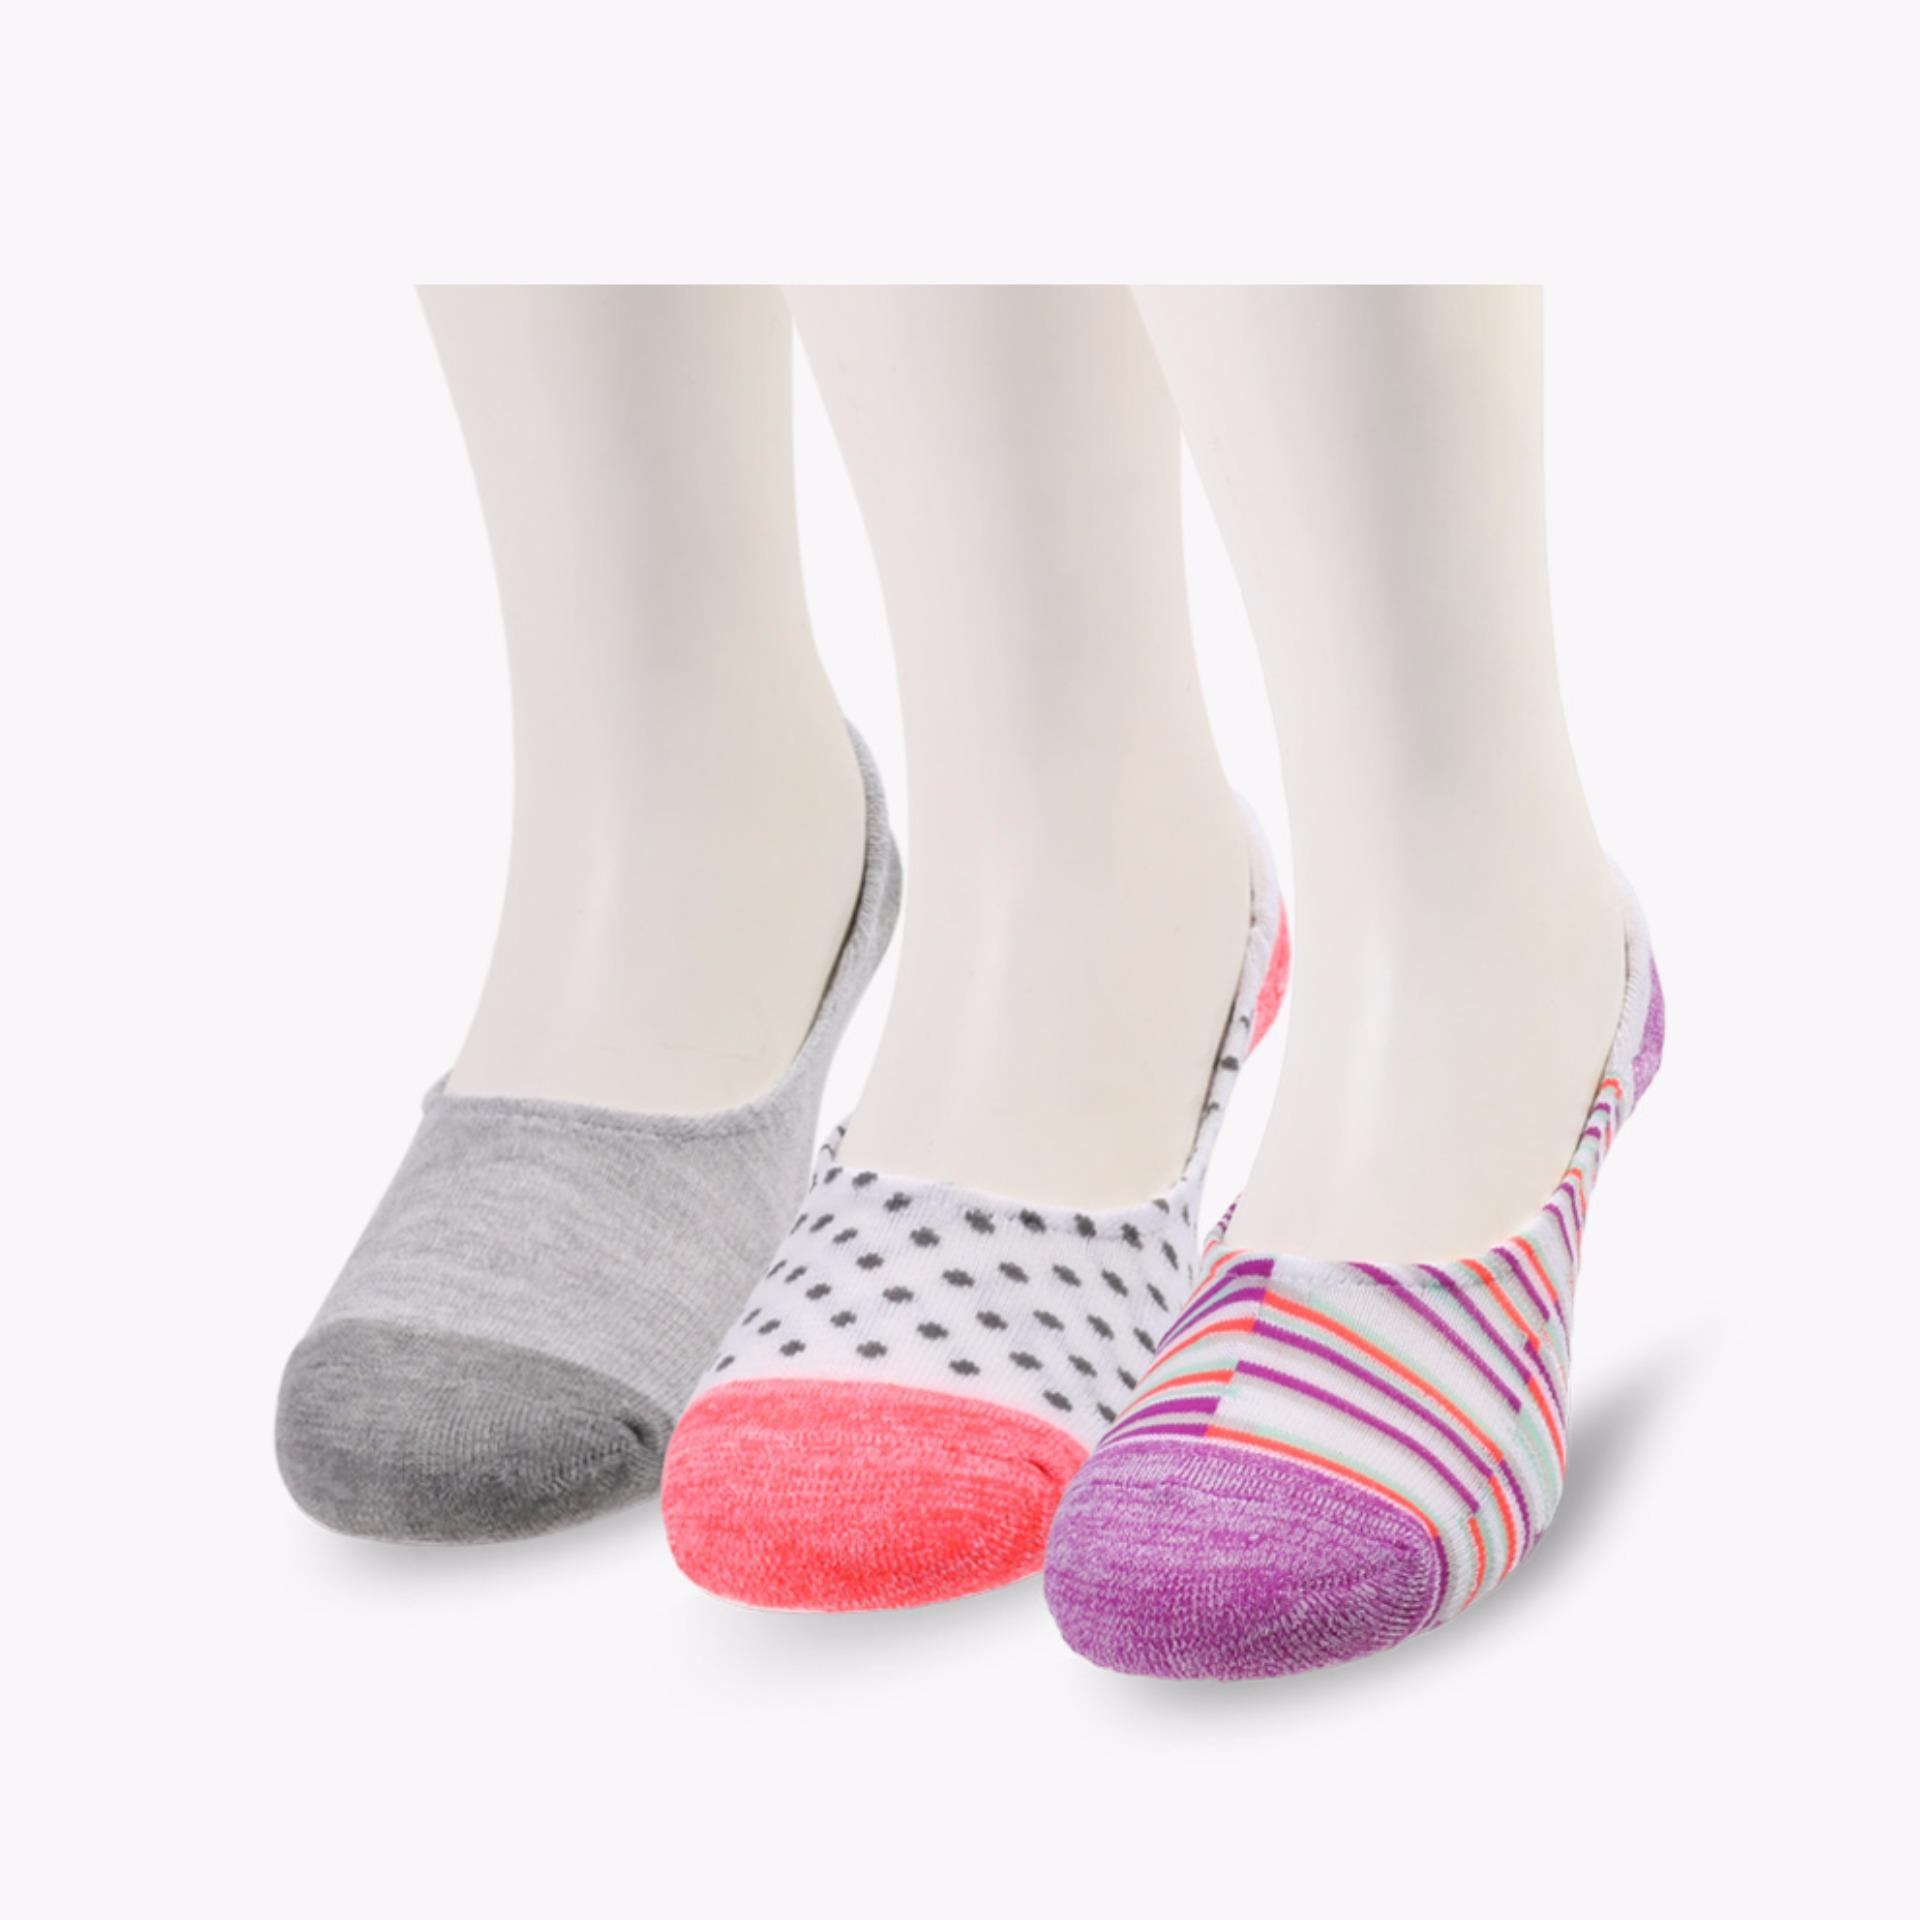 Jual Skechers Relaxed Fit Expected Gomel Women S Socks Multicolor Skechers Murah